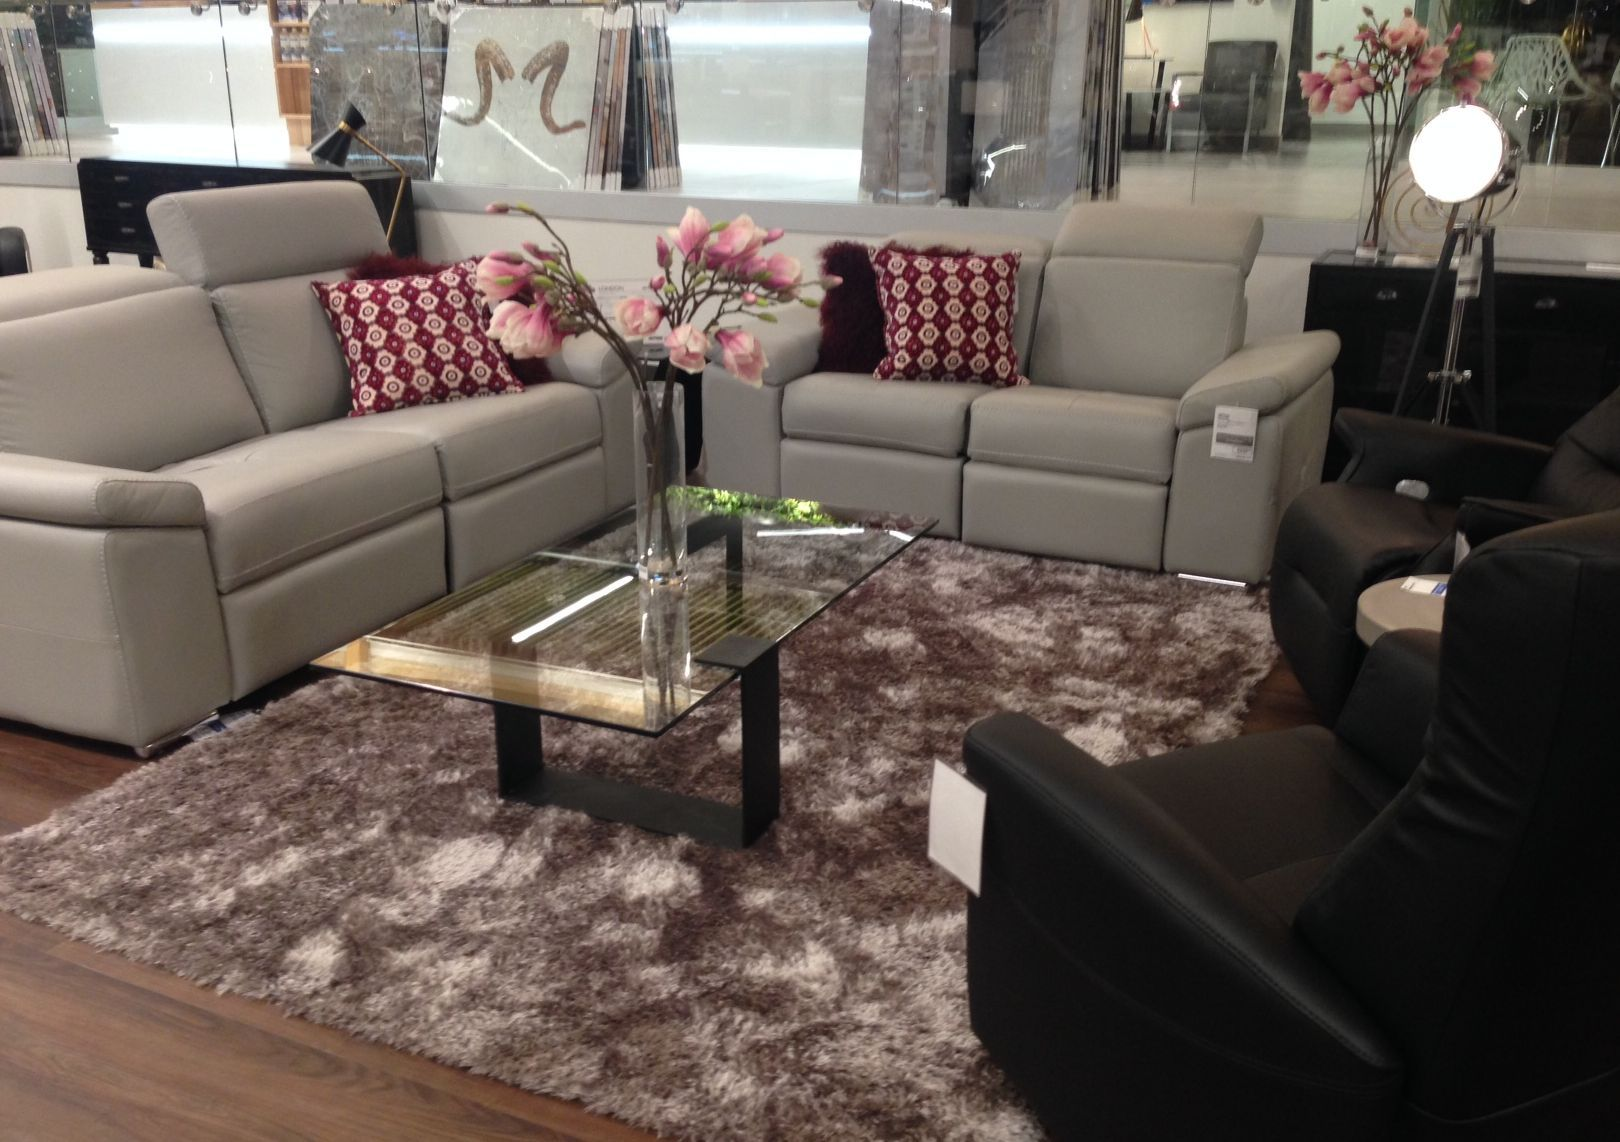 Pin By Ameublements Tanguay On Signature Maurice Tanguay Home Decor Sectional Couch Home